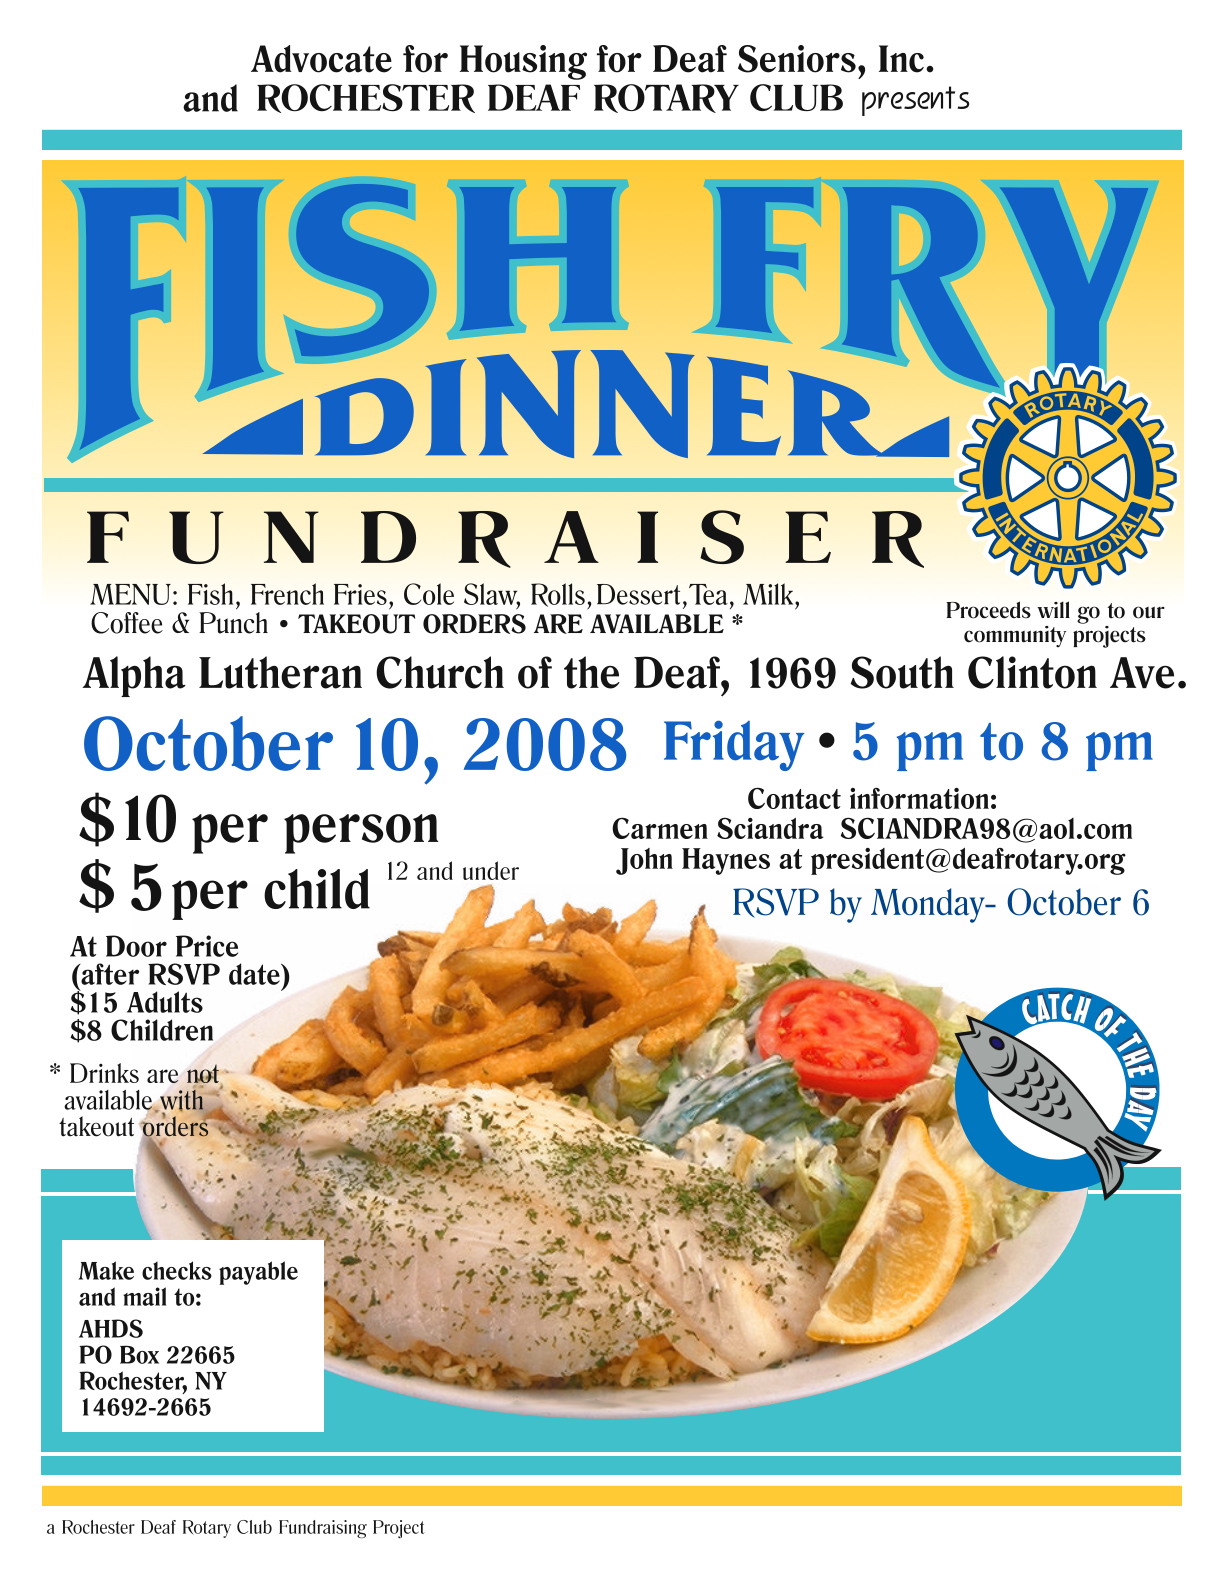 fish fry dinner event  october 10  2008